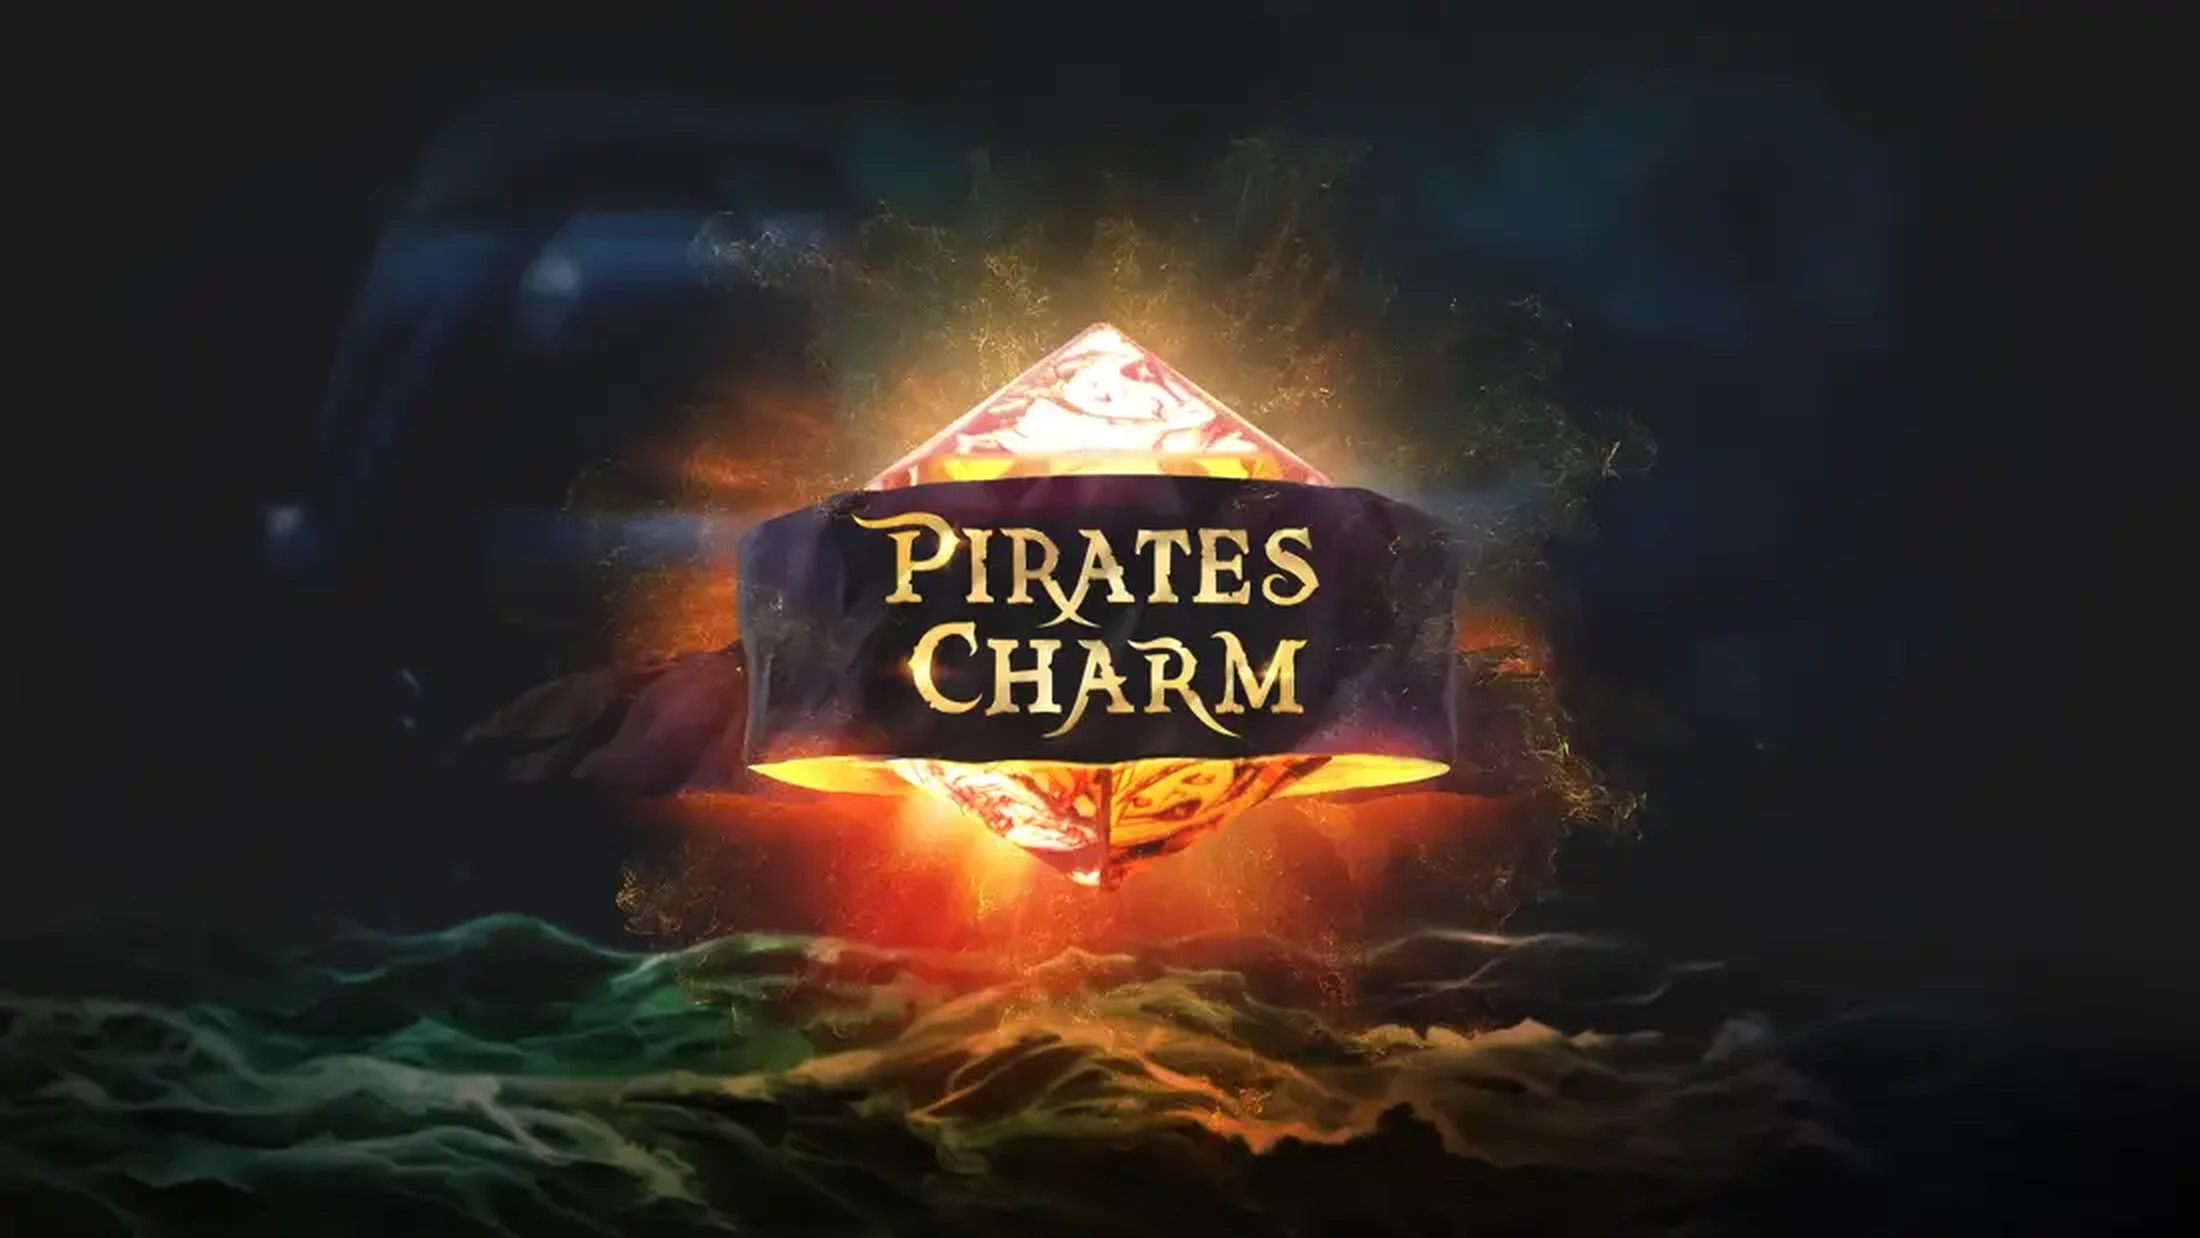 The Pirates Charm Online Slot Demo Game by Quickspin